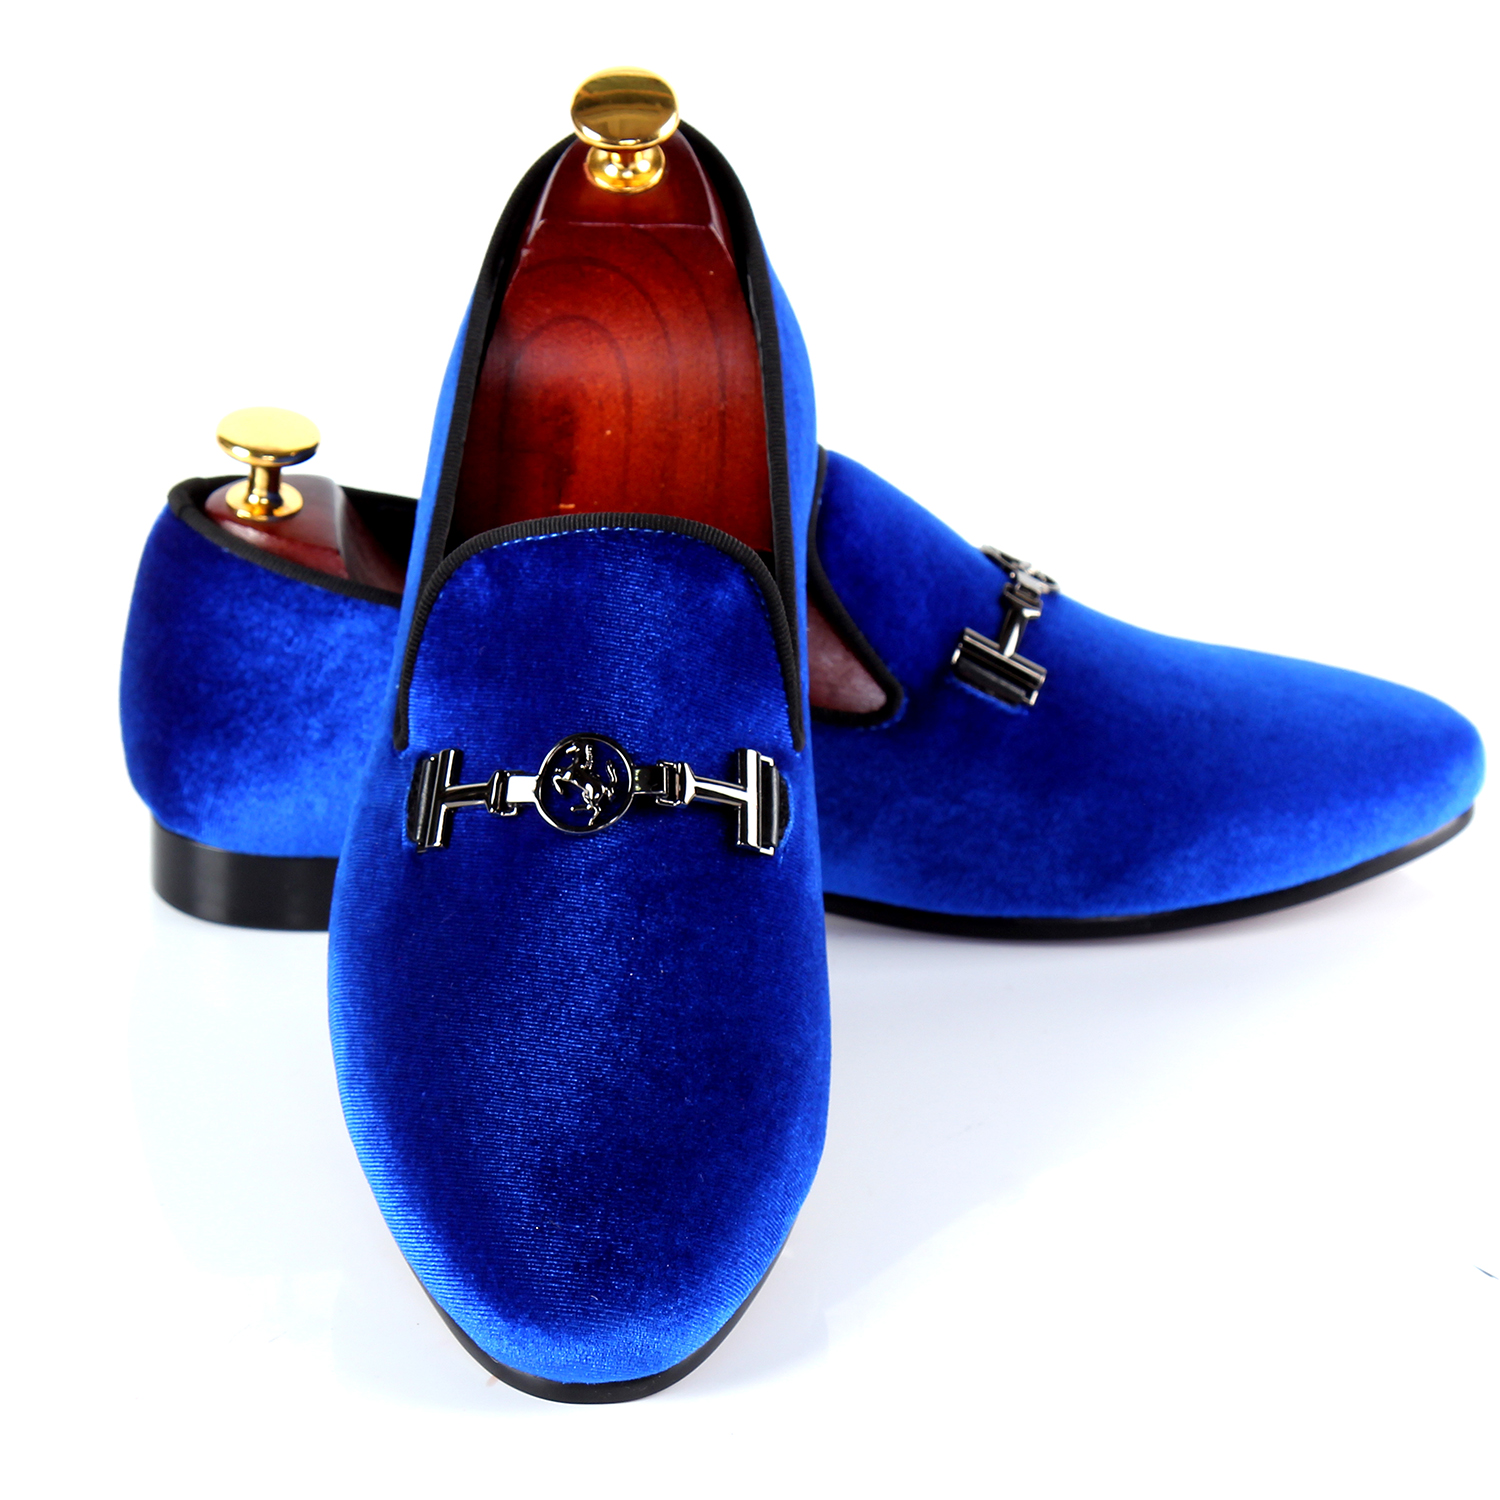 Harpelunde Buckle Strap Men Shoes Brand Blue Velvet Loafers Hot Sell Dress Shoes Size 7-14Harpelunde Buckle Strap Men Shoes Brand Blue Velvet Loafers Hot Sell Dress Shoes Size 7-14